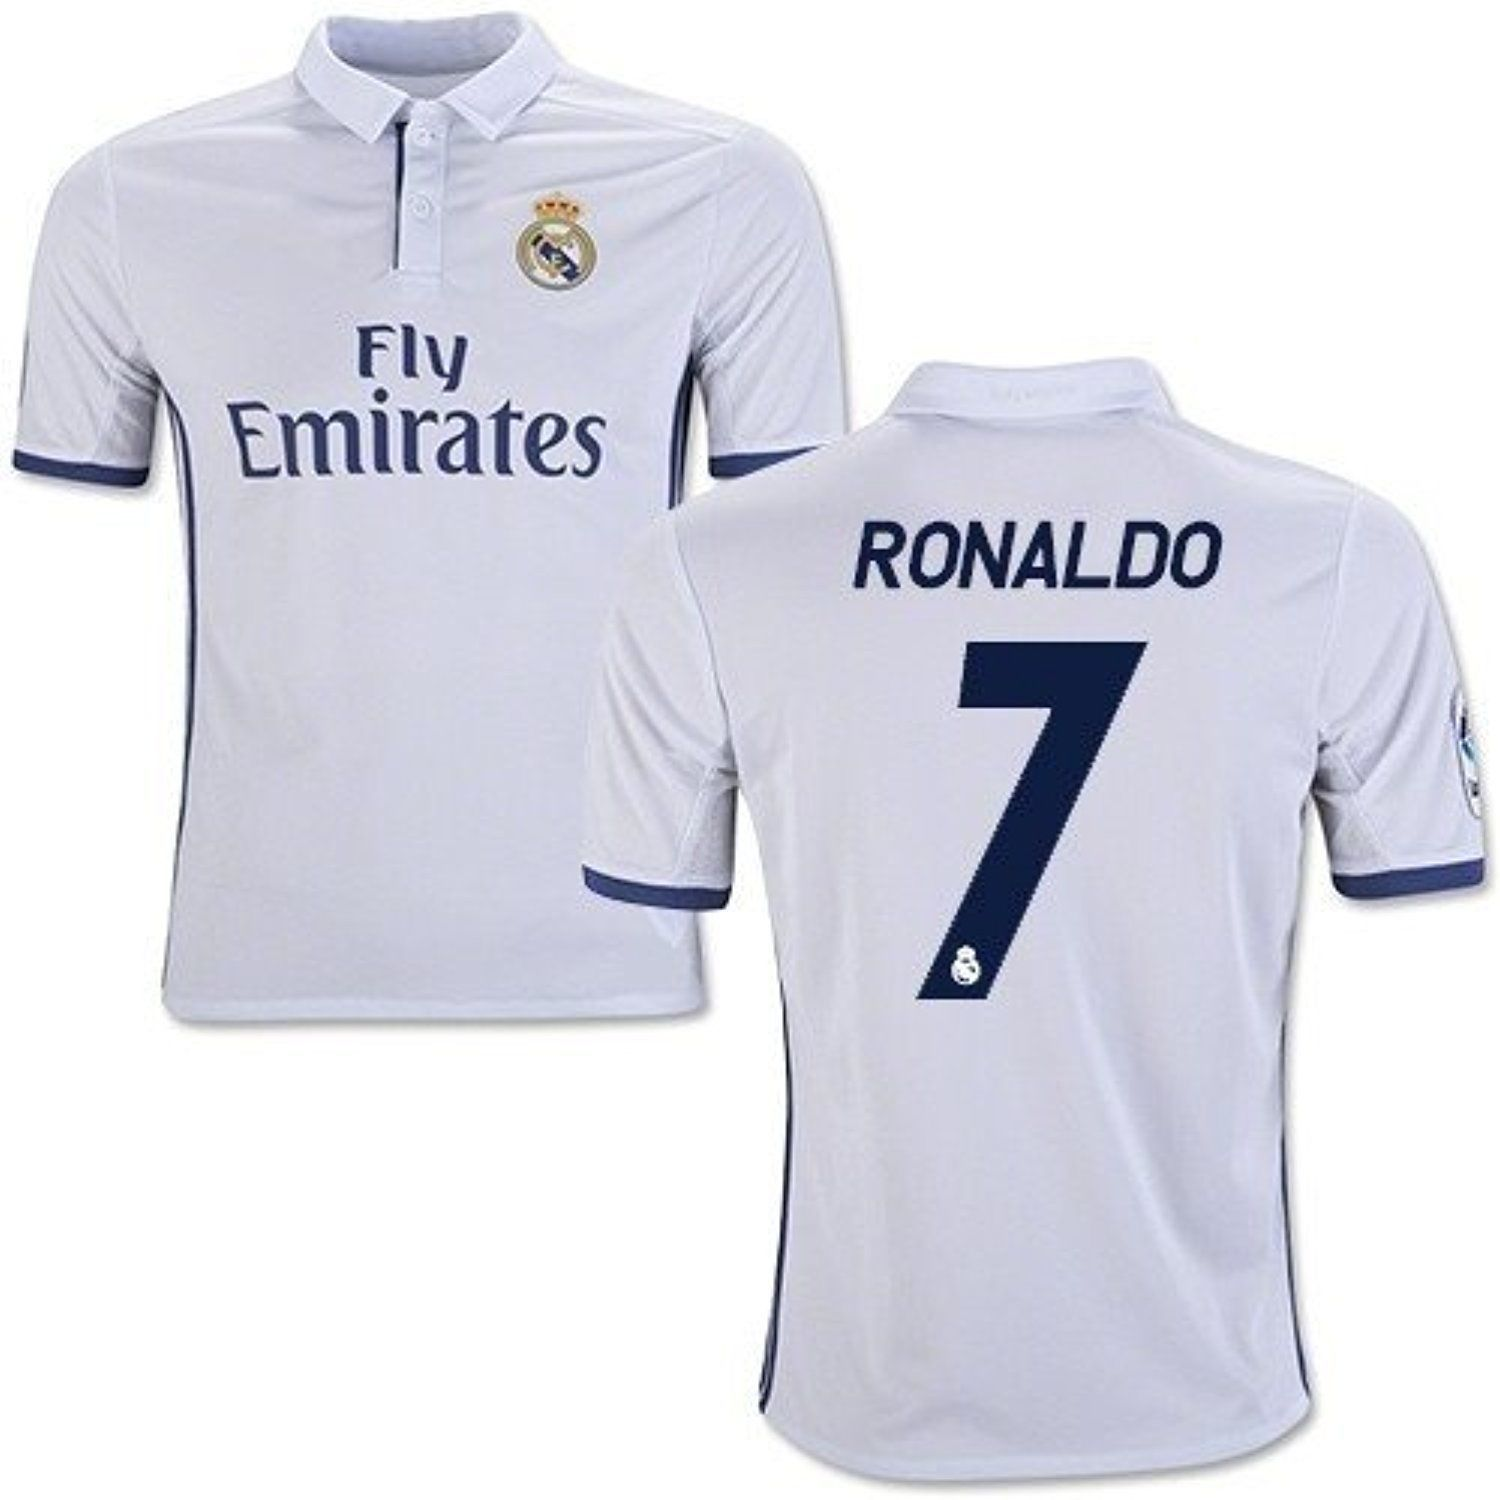 on sale 048bb 35957 New Real Madrid Home Cristiano Ronaldo Soccer Jersey ...